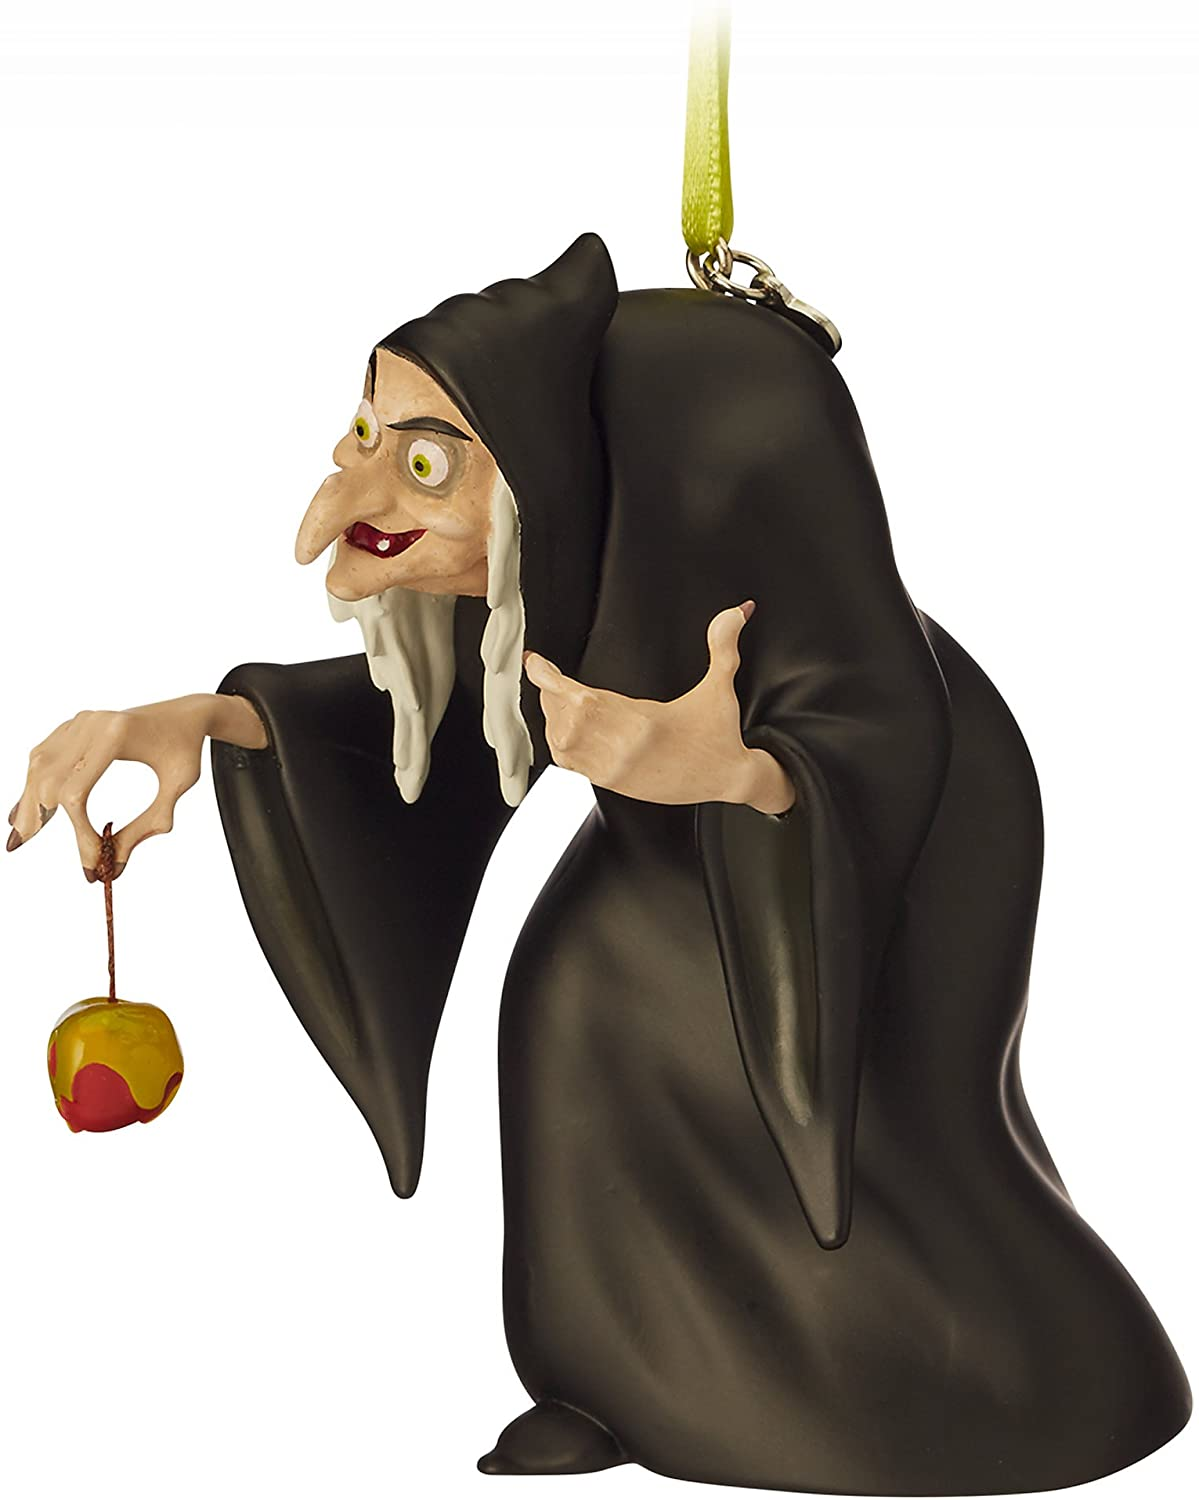 Evil Queen as Hag Sketchbook Ornament - Snow White and the Seven Dwarfs